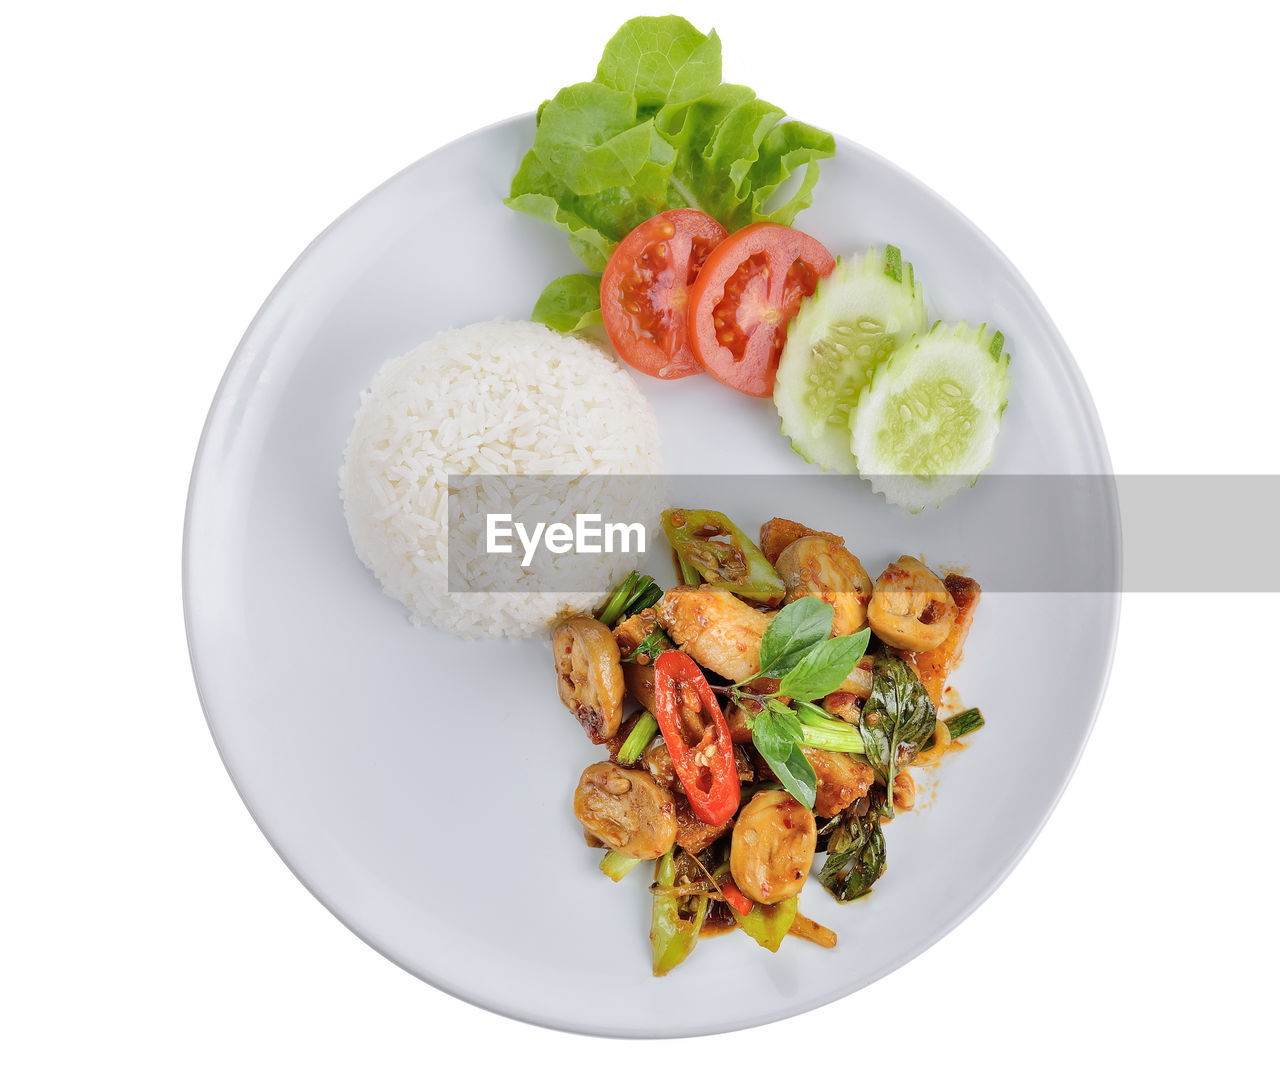 food, food and drink, freshness, ready-to-eat, healthy eating, still life, wellbeing, plate, white background, indoors, studio shot, serving size, vegetable, no people, rice - food staple, fruit, close-up, meat, high angle view, directly above, herb, temptation